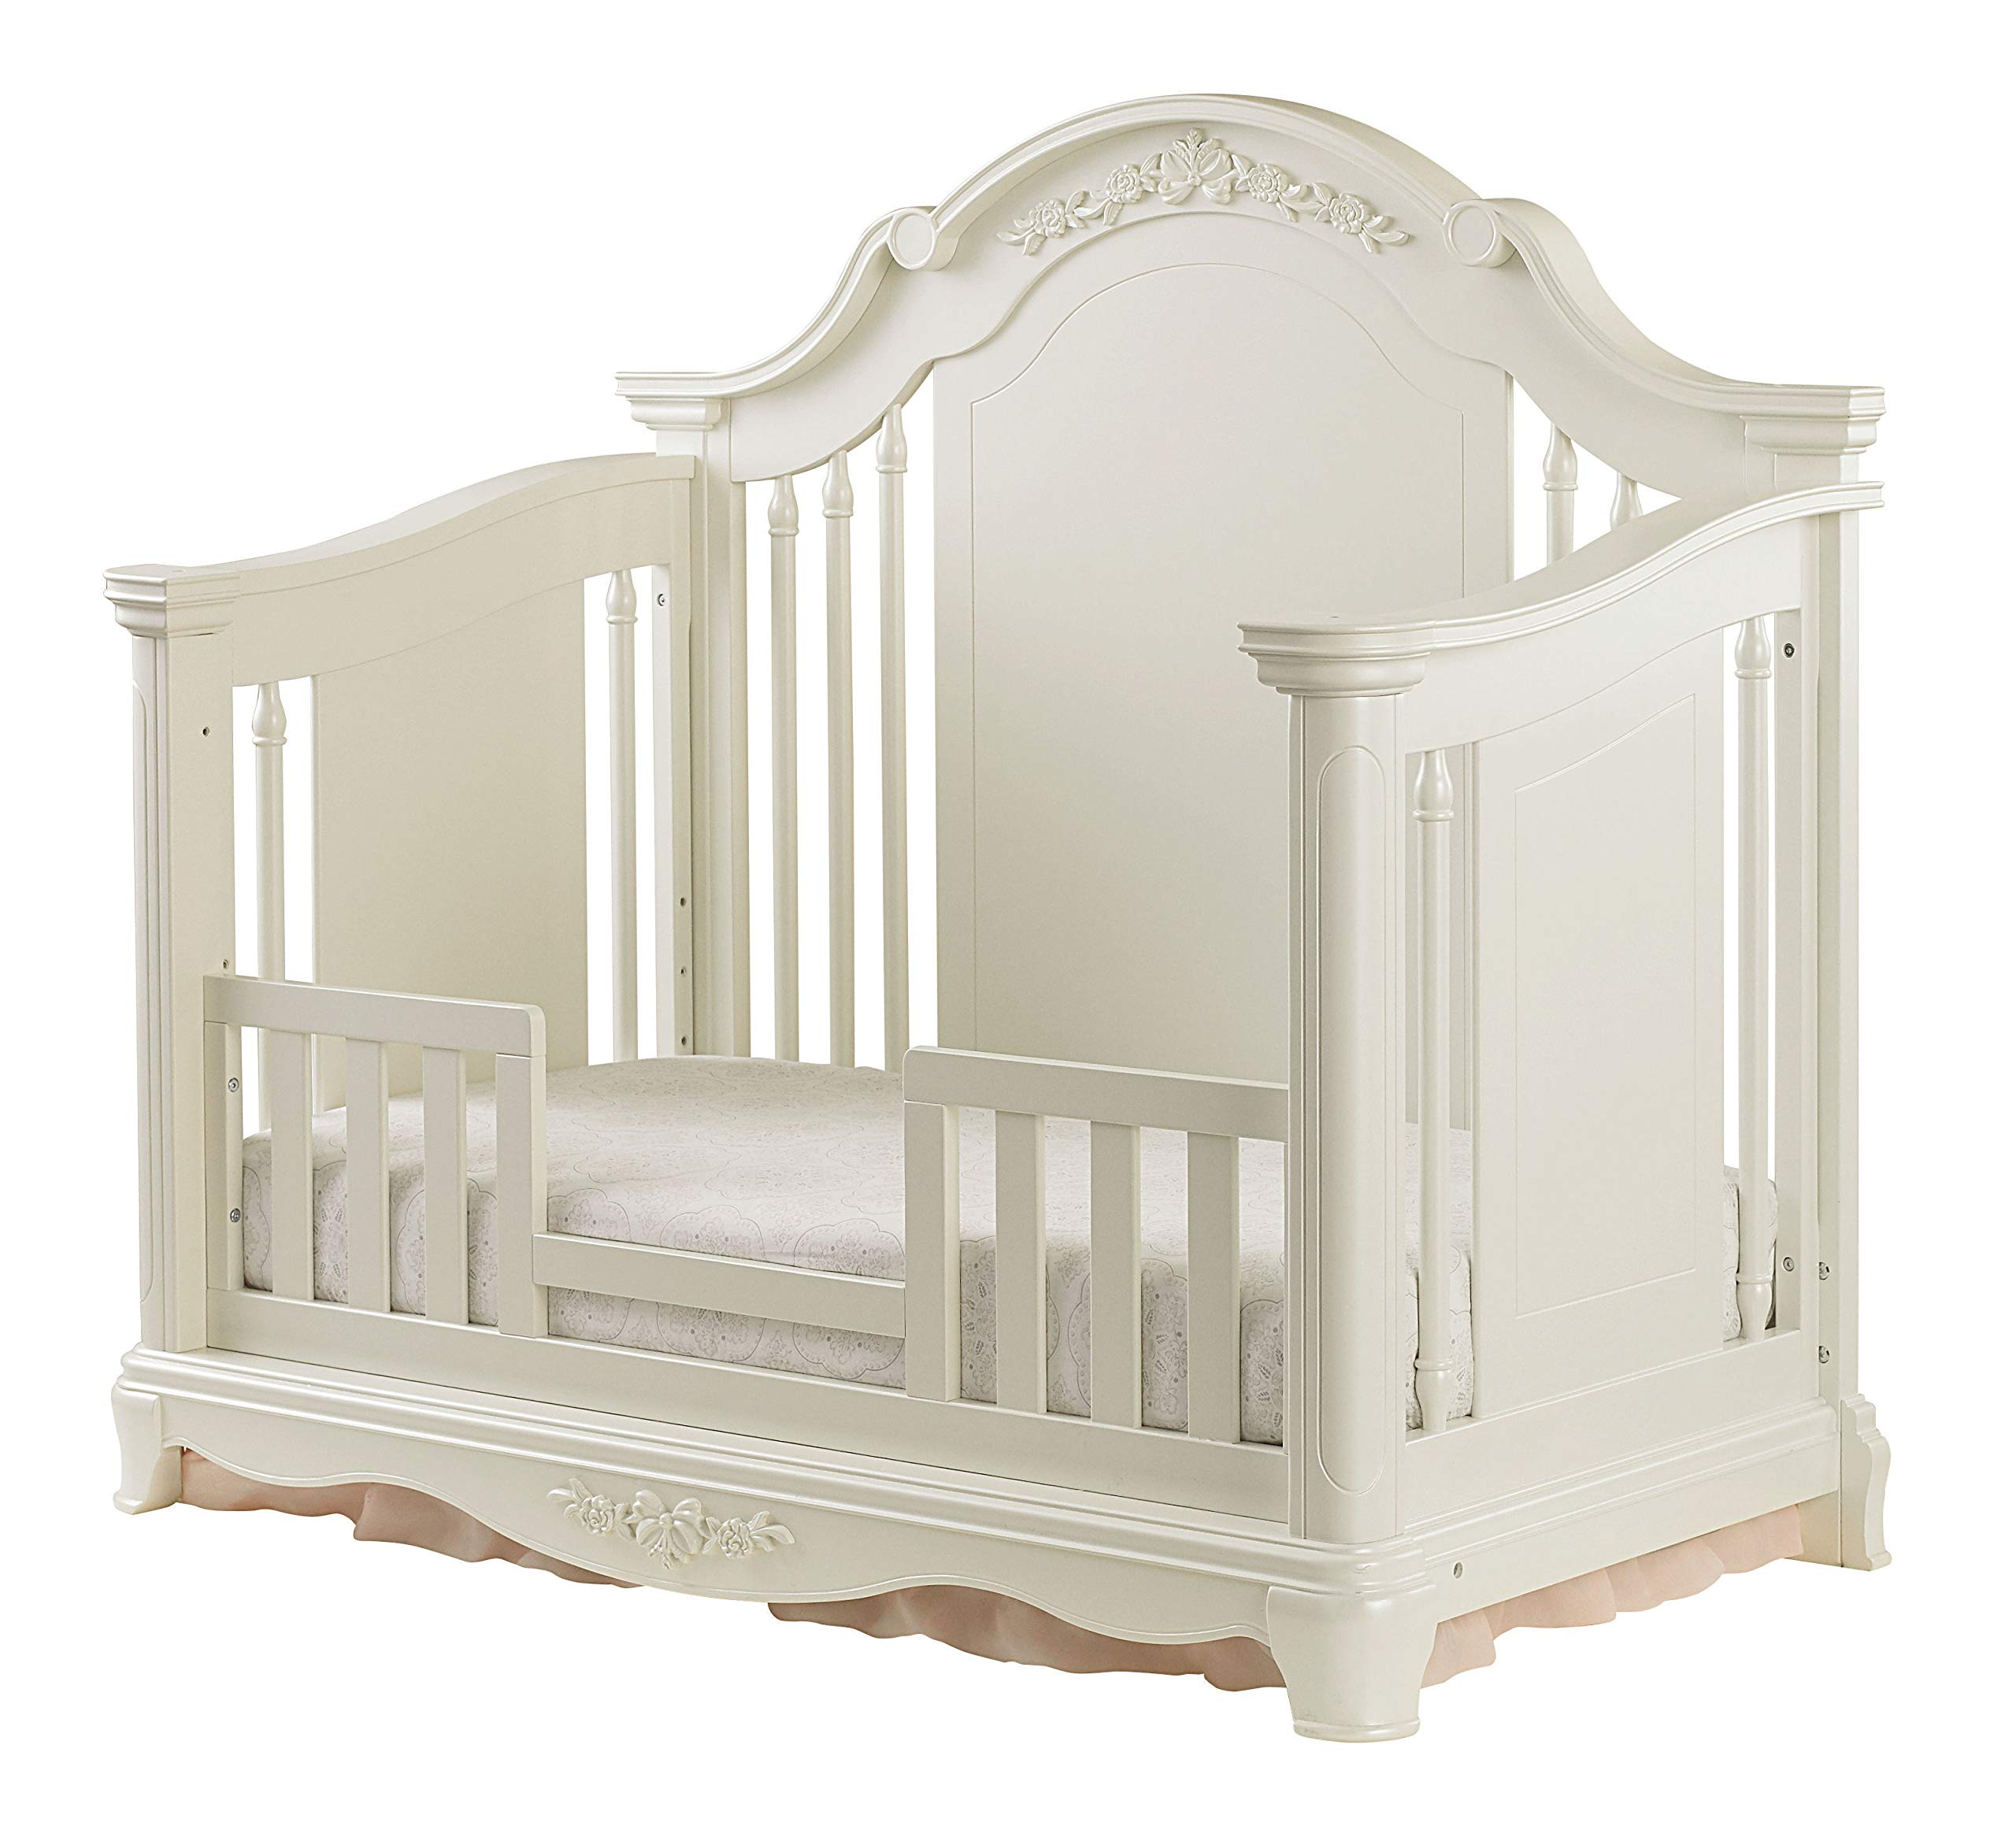 Bassett Baby & Kids Addison Toddler Kit, Pearl White by Bassett Baby & Kids